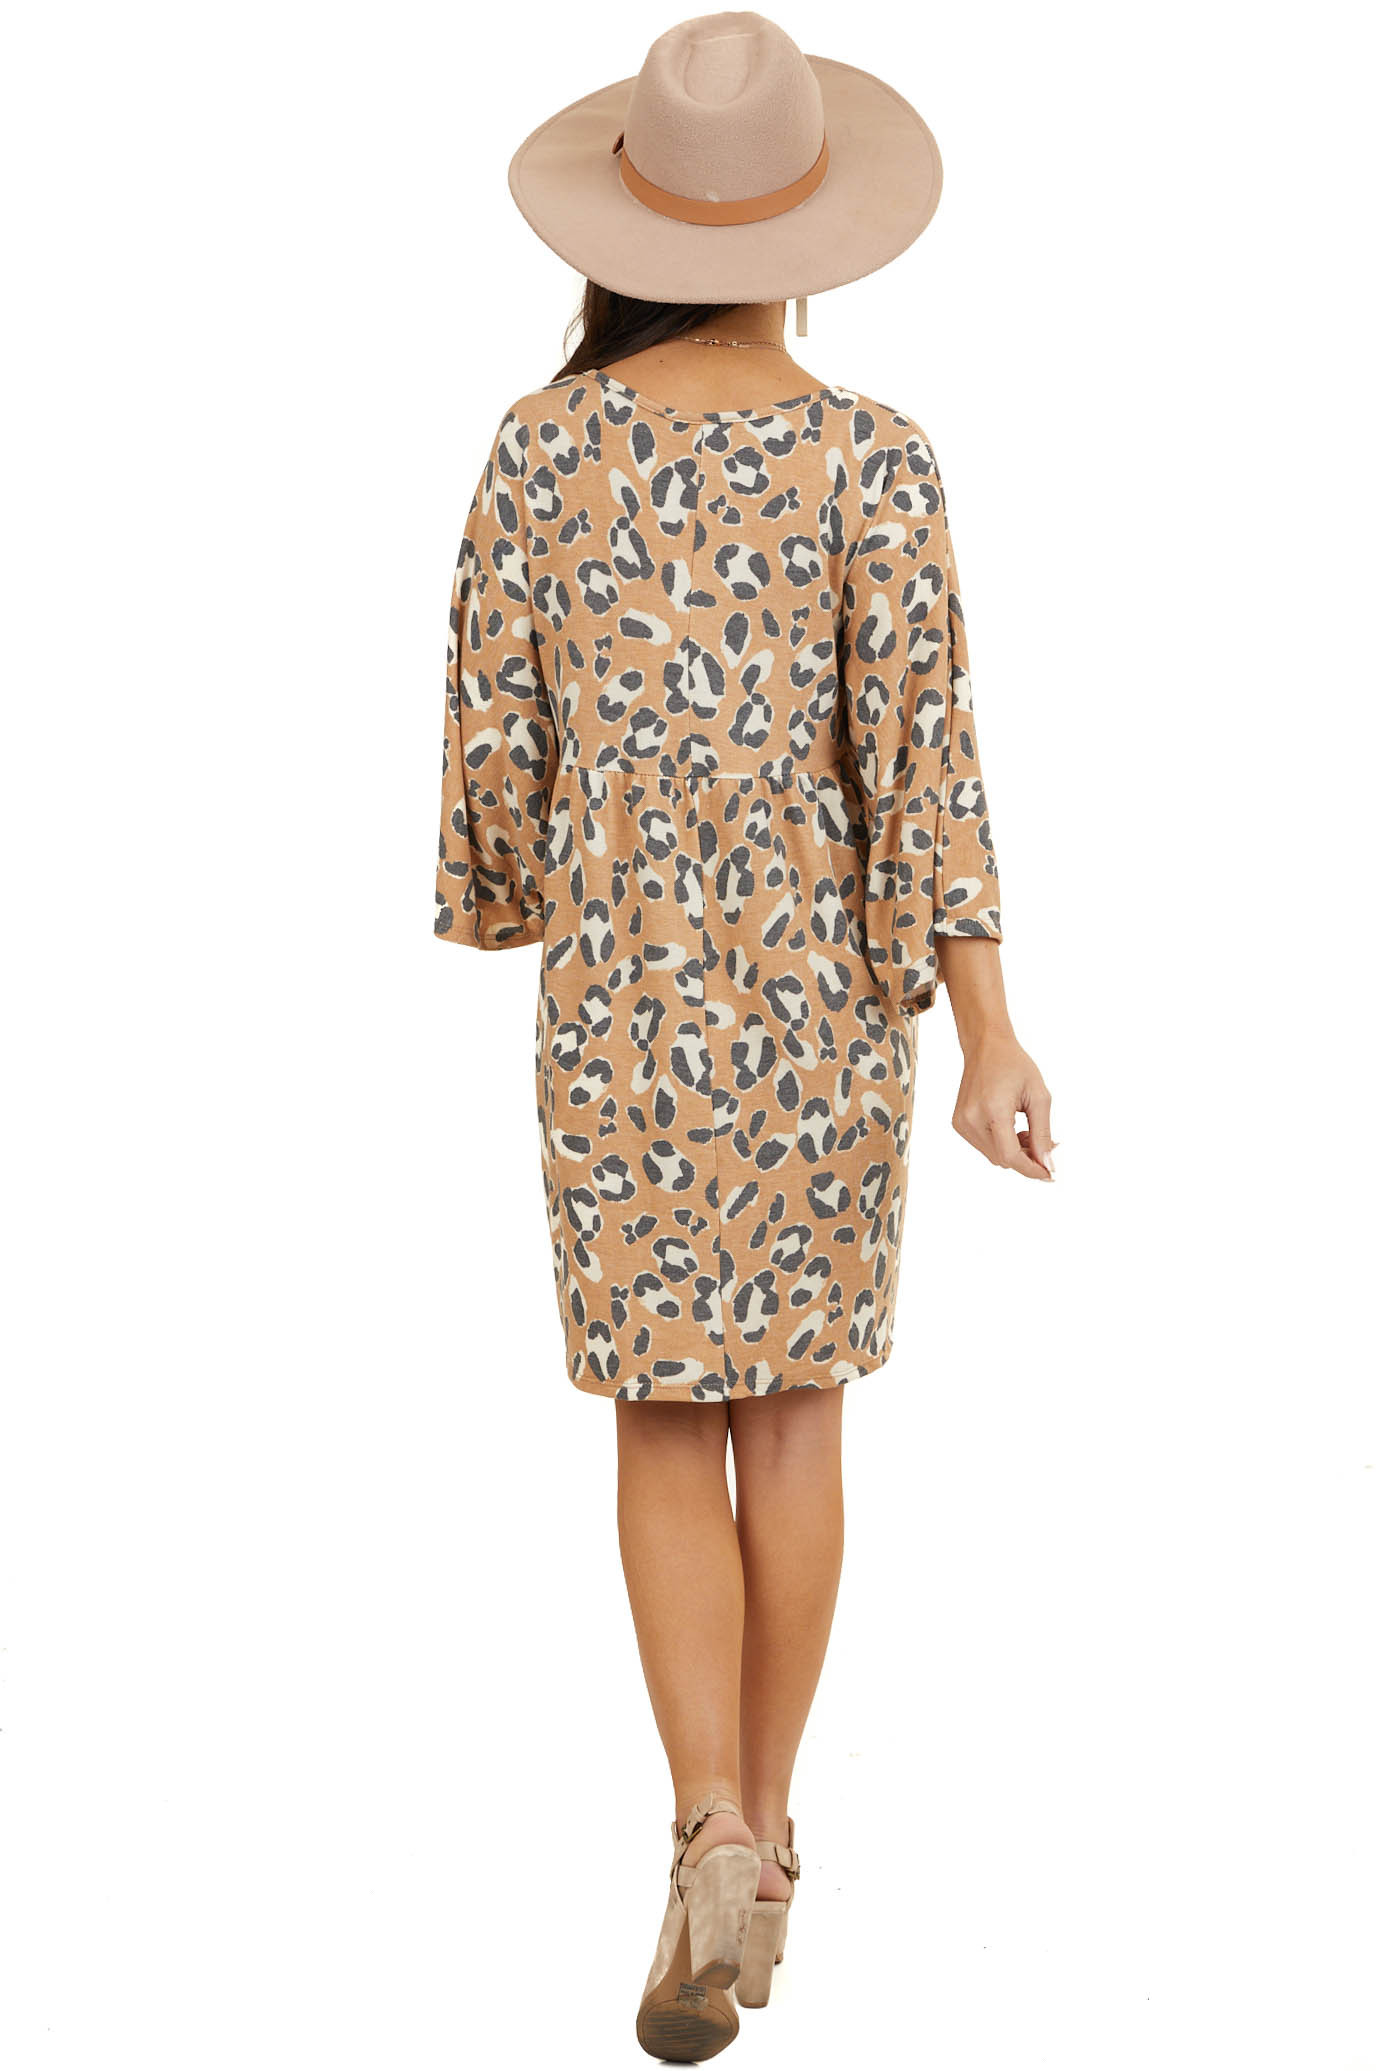 Dusty Orange Leopard Print Dress with 3/4 Length Sleeves